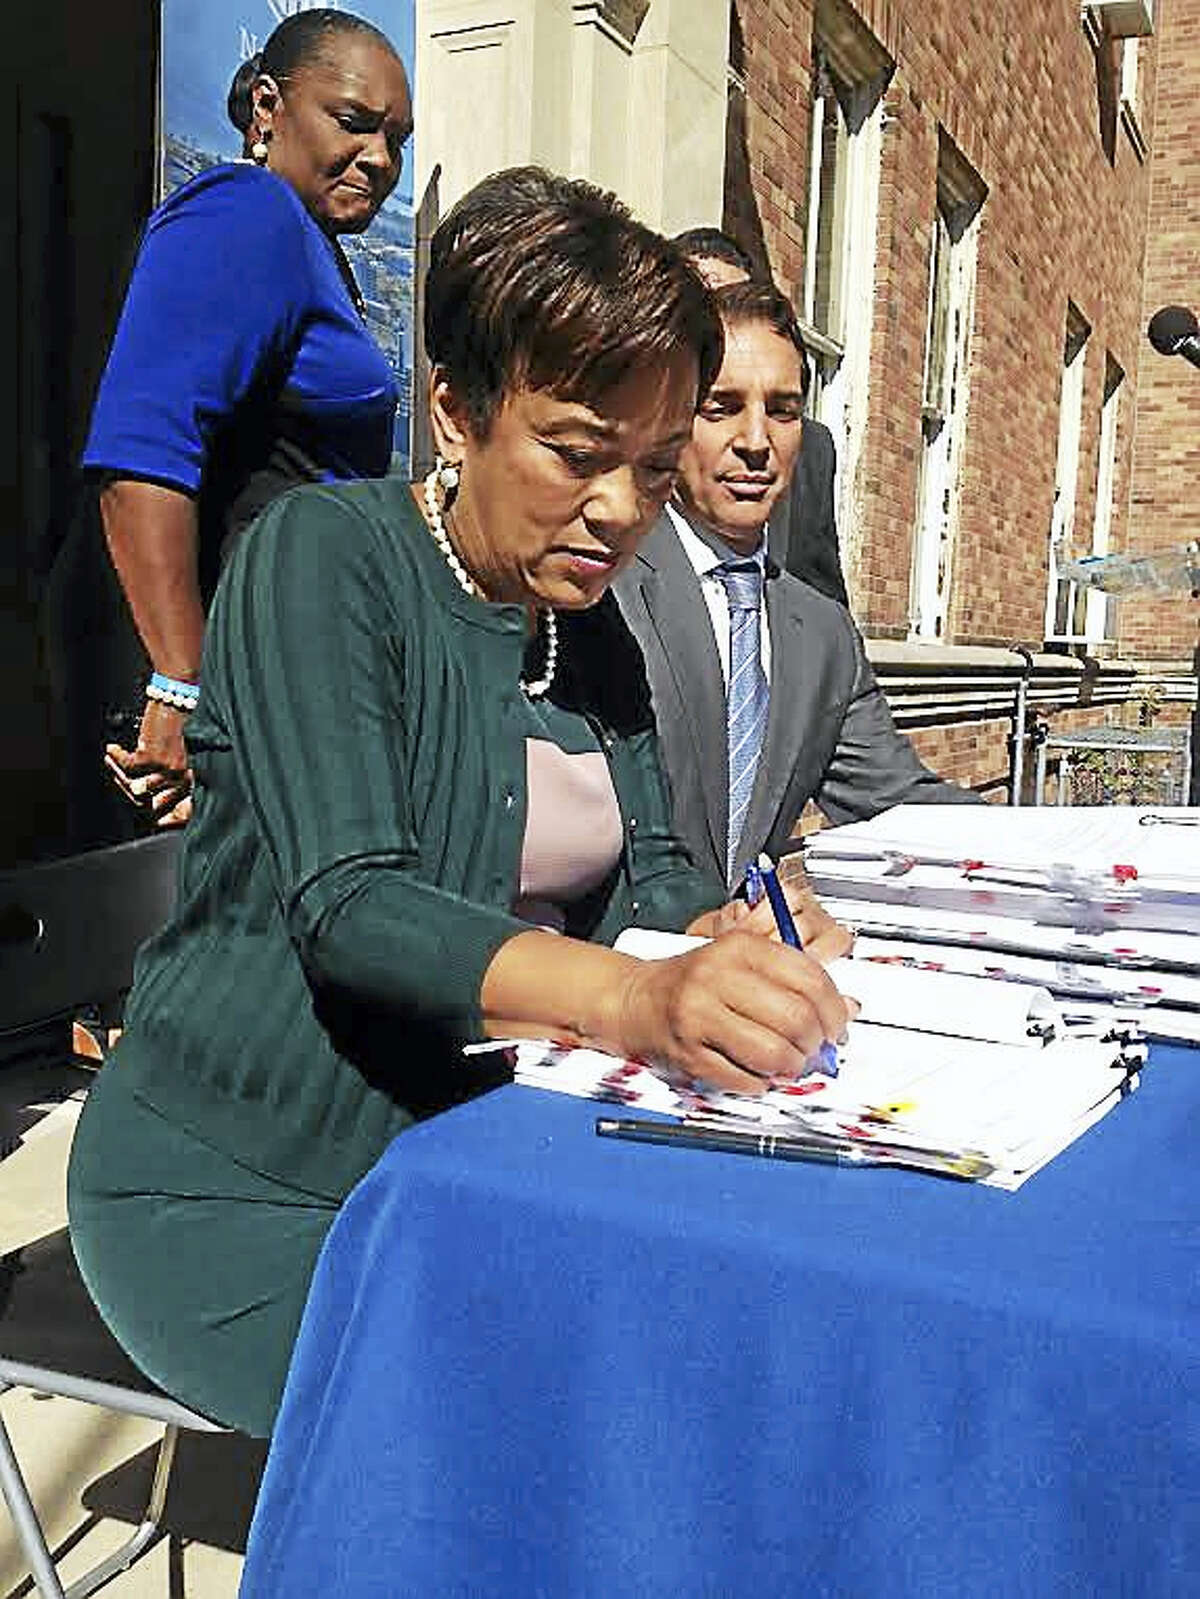 Mayor Toni Harp signs development agreement with Randy Salvatore of RMS Companies. They are in front of the Welch Annex School, which will be converted to housing. Serena Neal-Sanjurjo, head of the Livable City Initiative, is behind them.